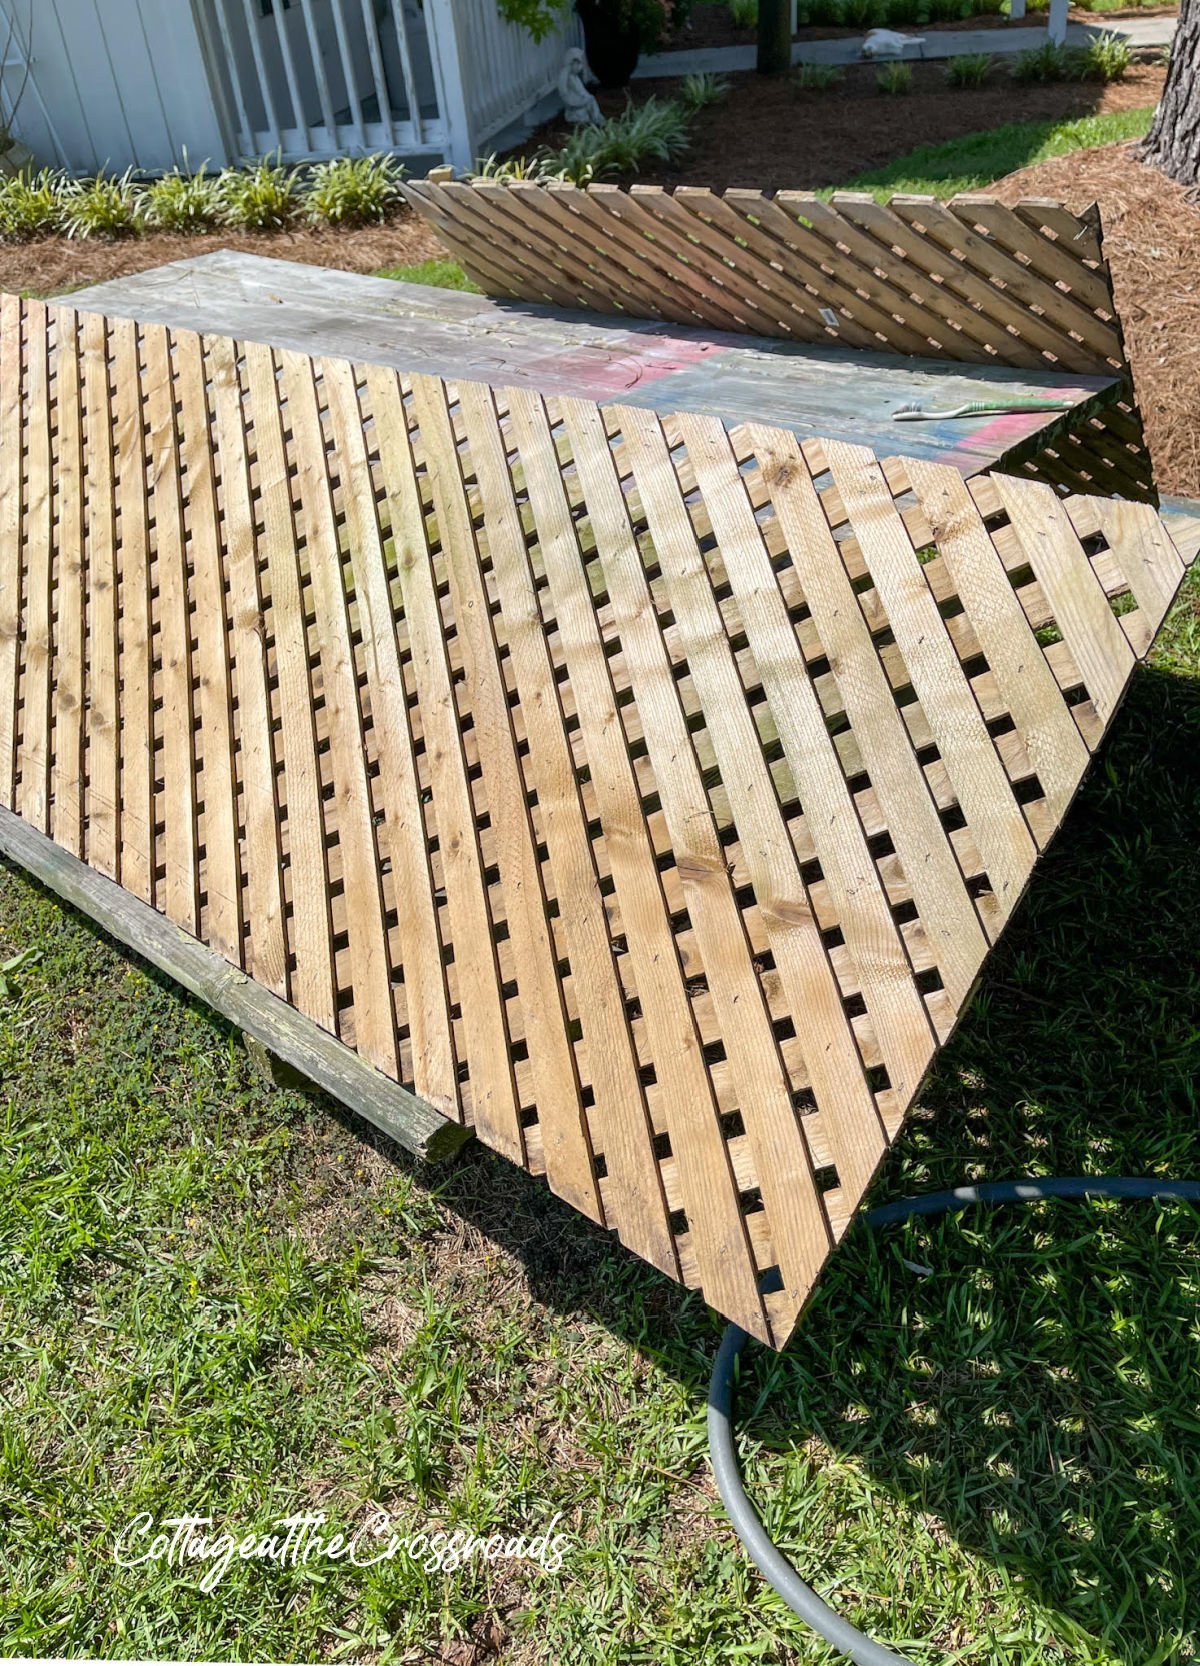 wood lattice panels propped on a picnic table